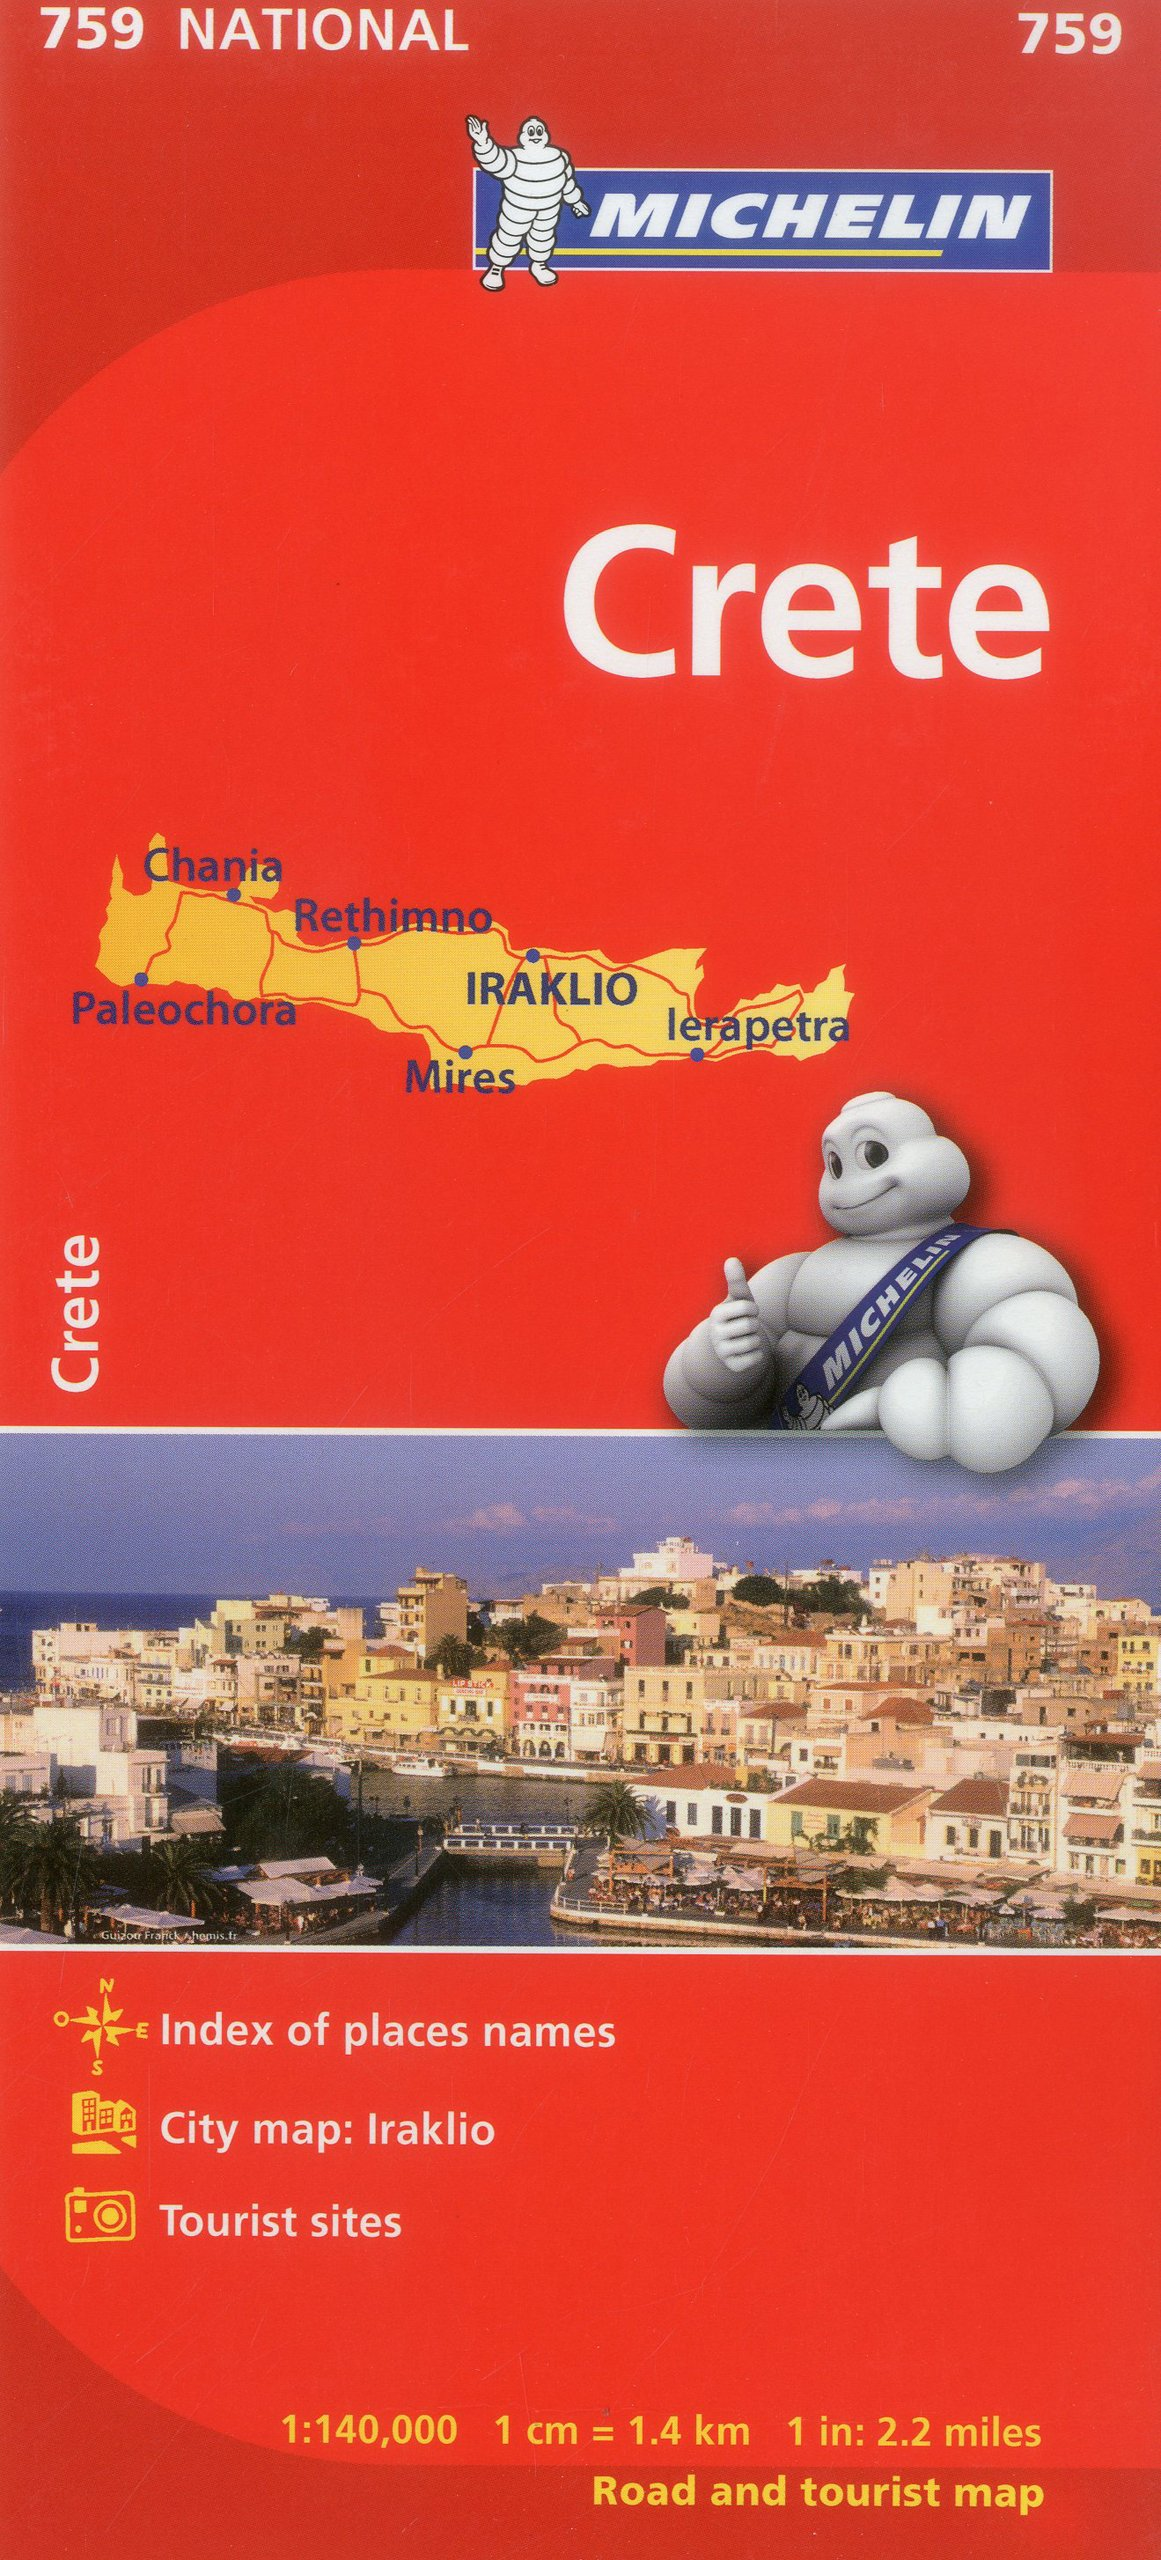 Michelin Crete (Michelin Maps)